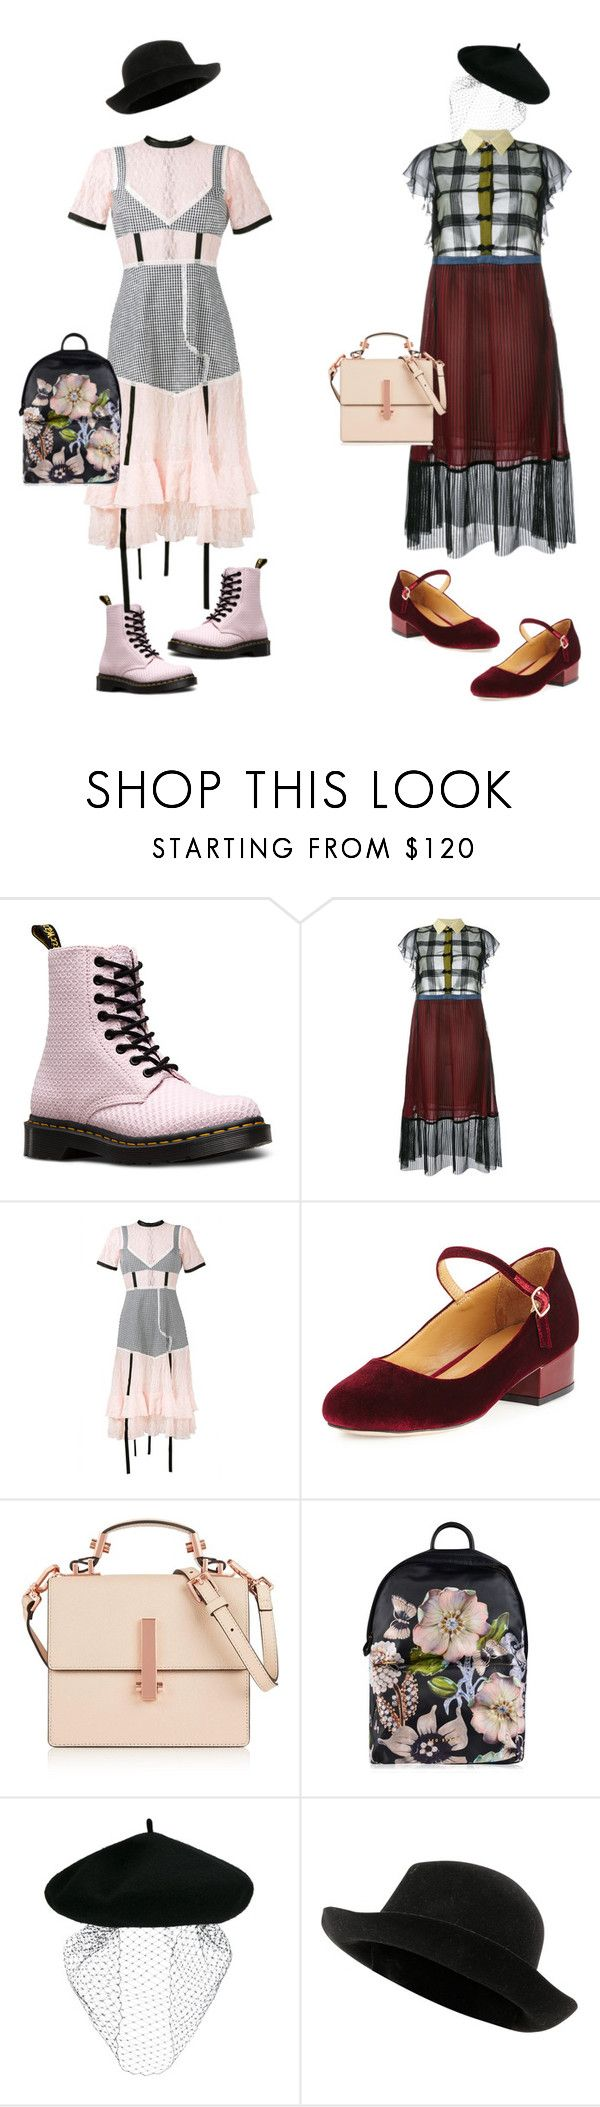 """""""Дело в шляпе"""" by repriza ❤ liked on Polyvore featuring Dr. Martens, Marco de Vincenzo, Sandy Liang, Cecelia New York, Kendall + Kylie, Ted Baker, Silver Spoon Attire and Chanel"""